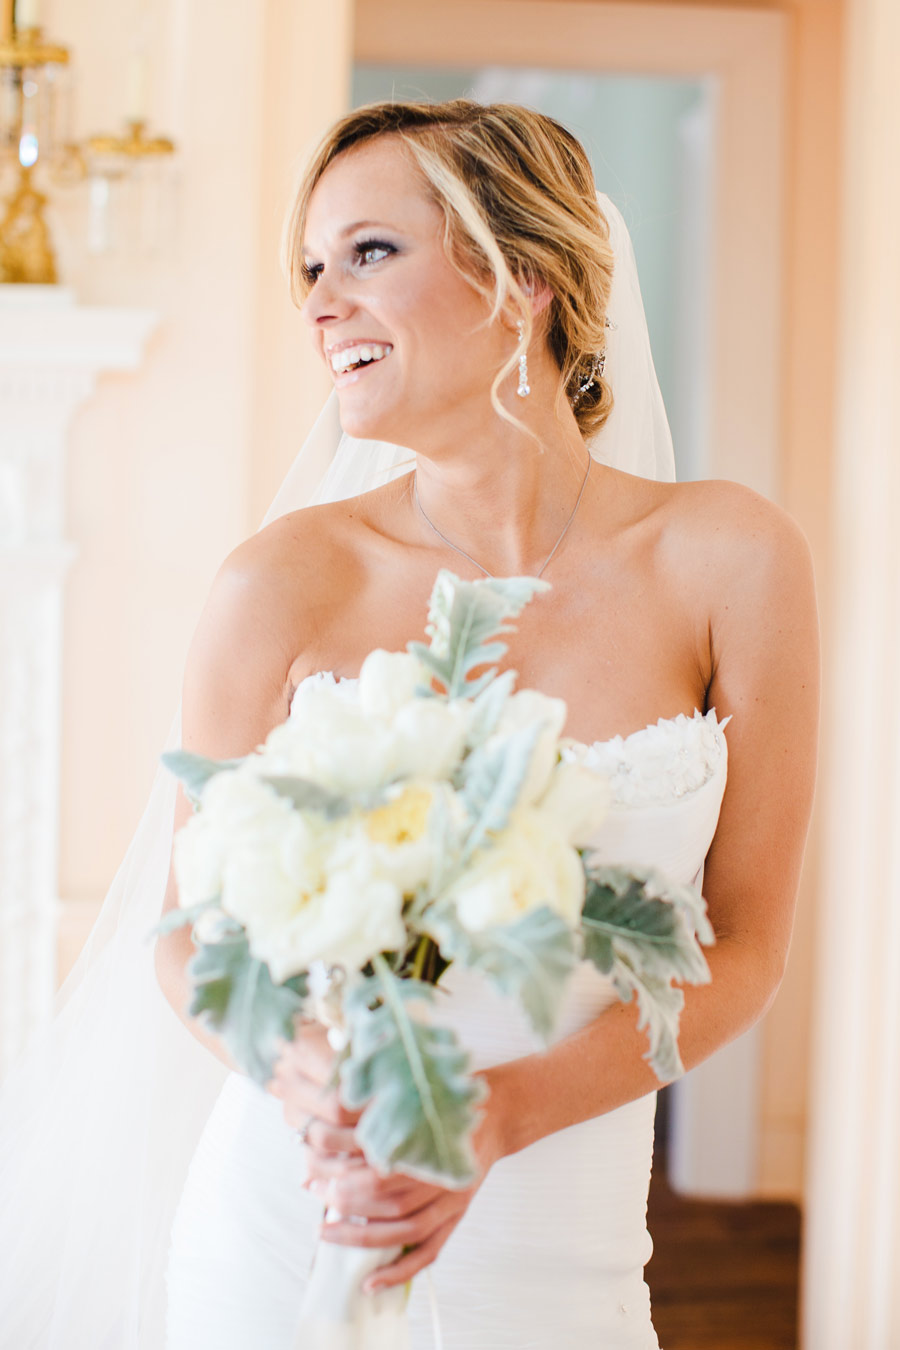 Beautiful southern weddings bride at the Lowndes Grove Plantation with her bouquet in charleston, SC wedding photography